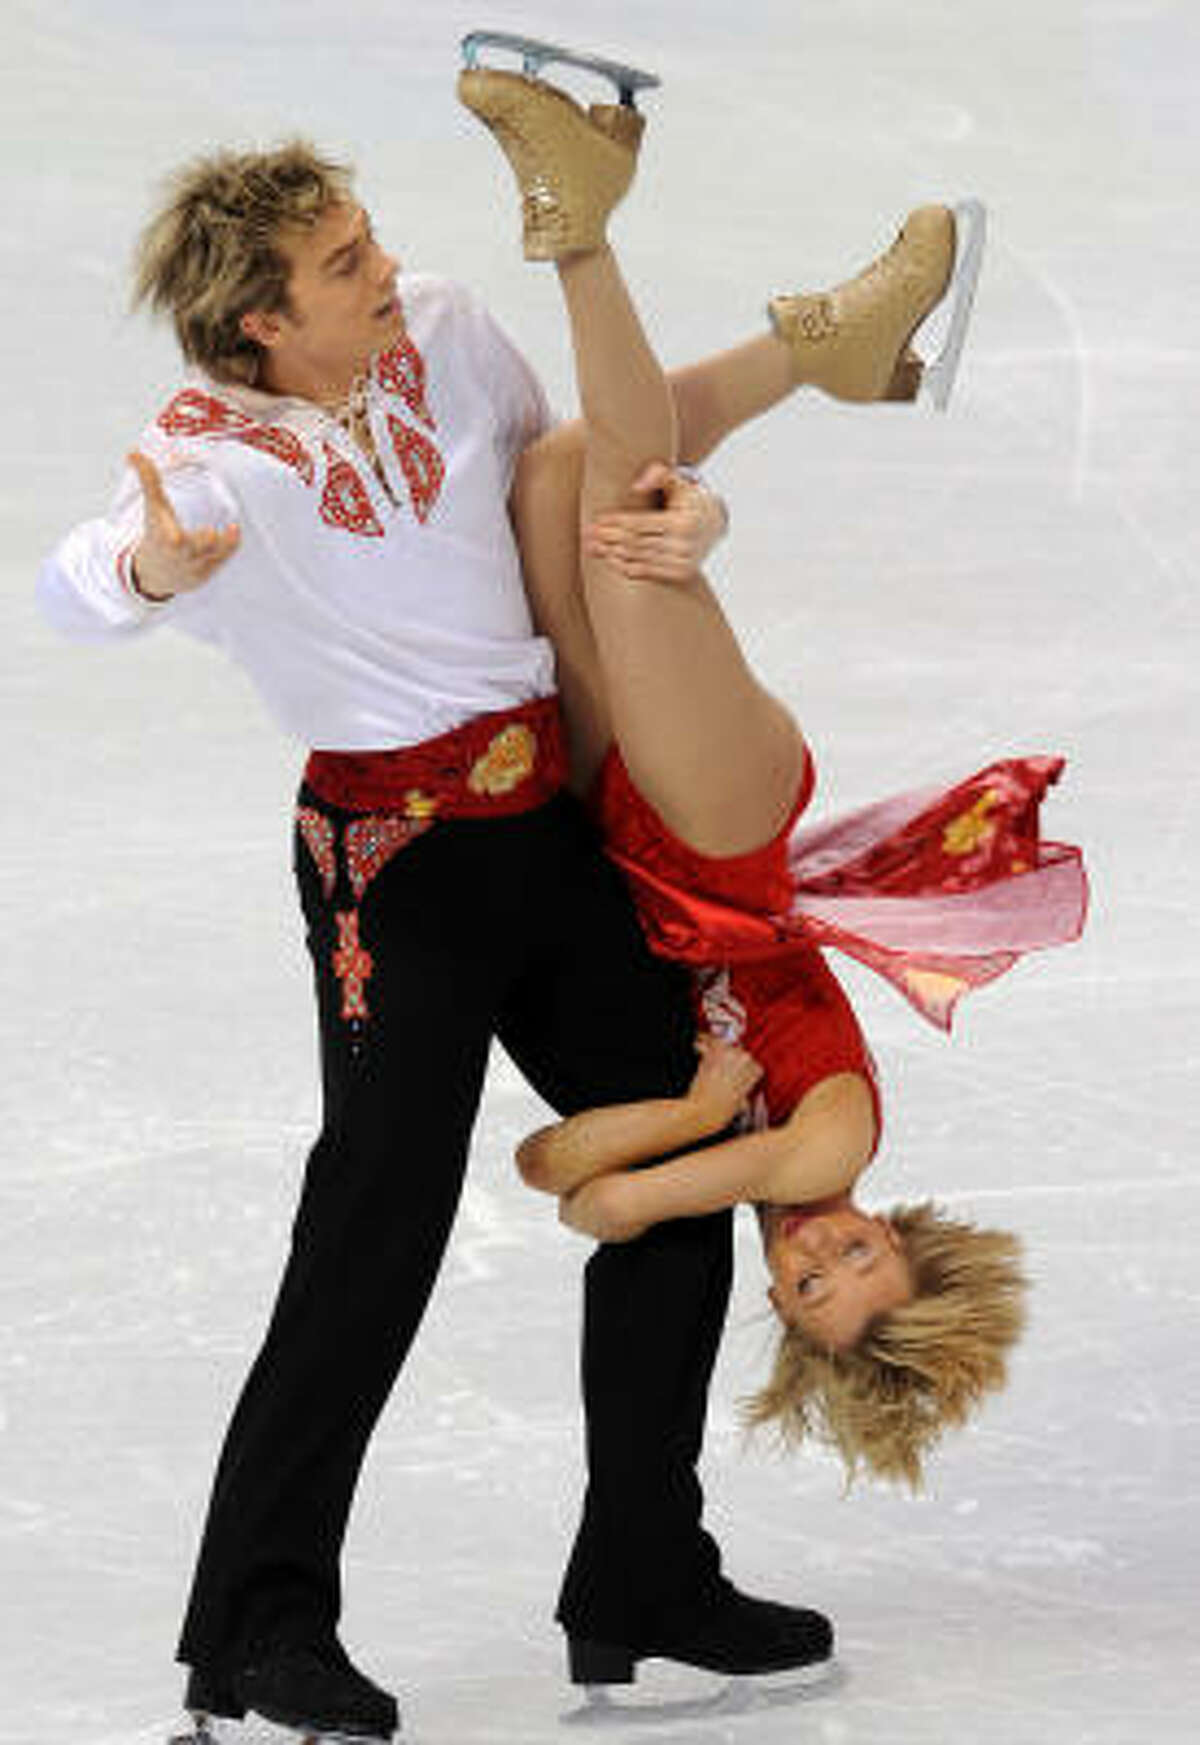 Great Britain's Penny Coomes and Nicholas Buckland compete in the Figure Skating Original Dance program.